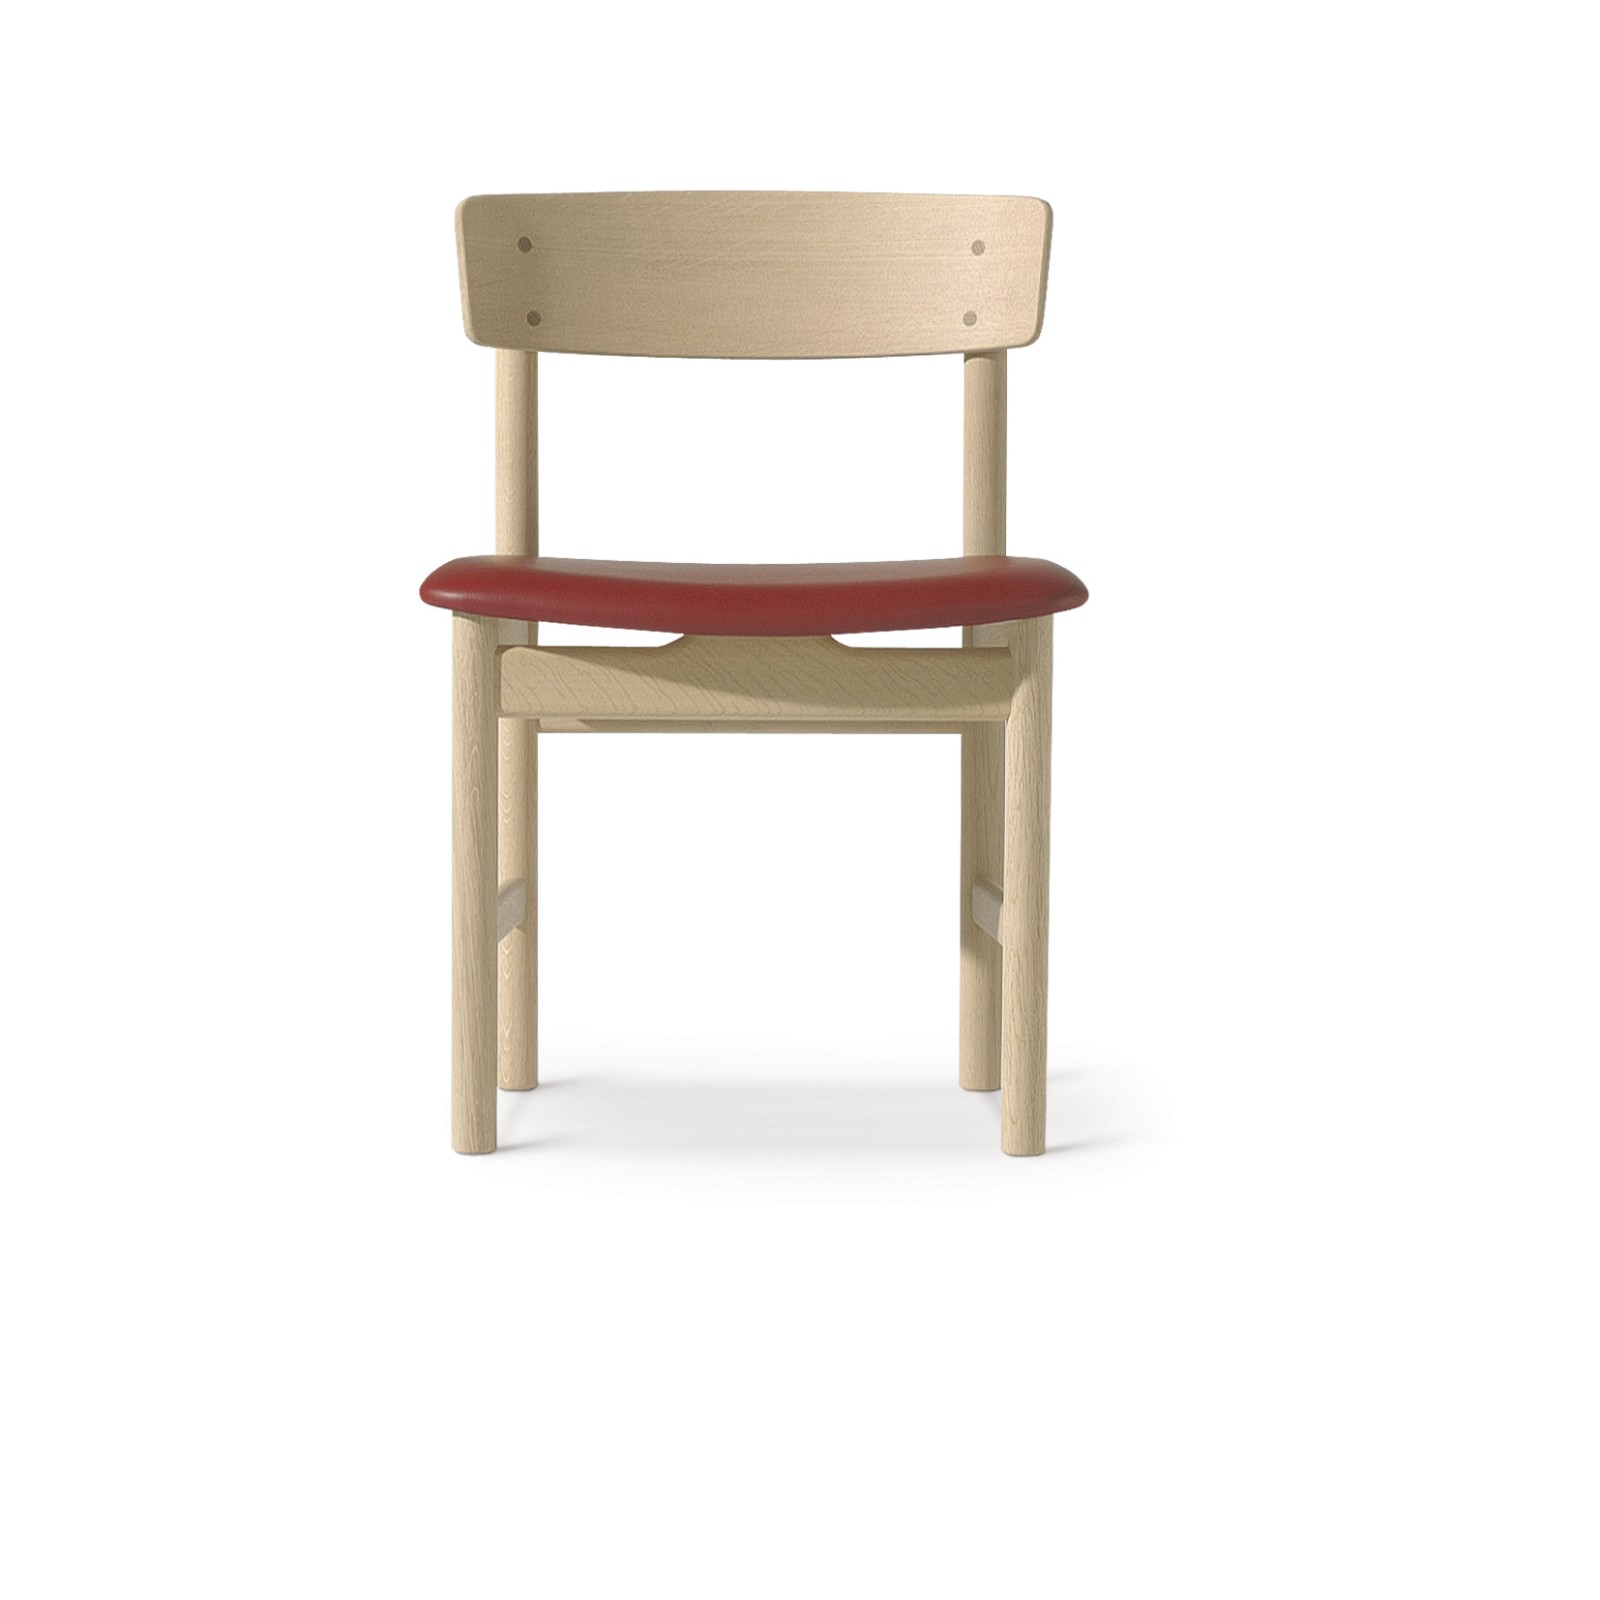 Errits0 Chair Oak standard lacquer, Remix 2 113